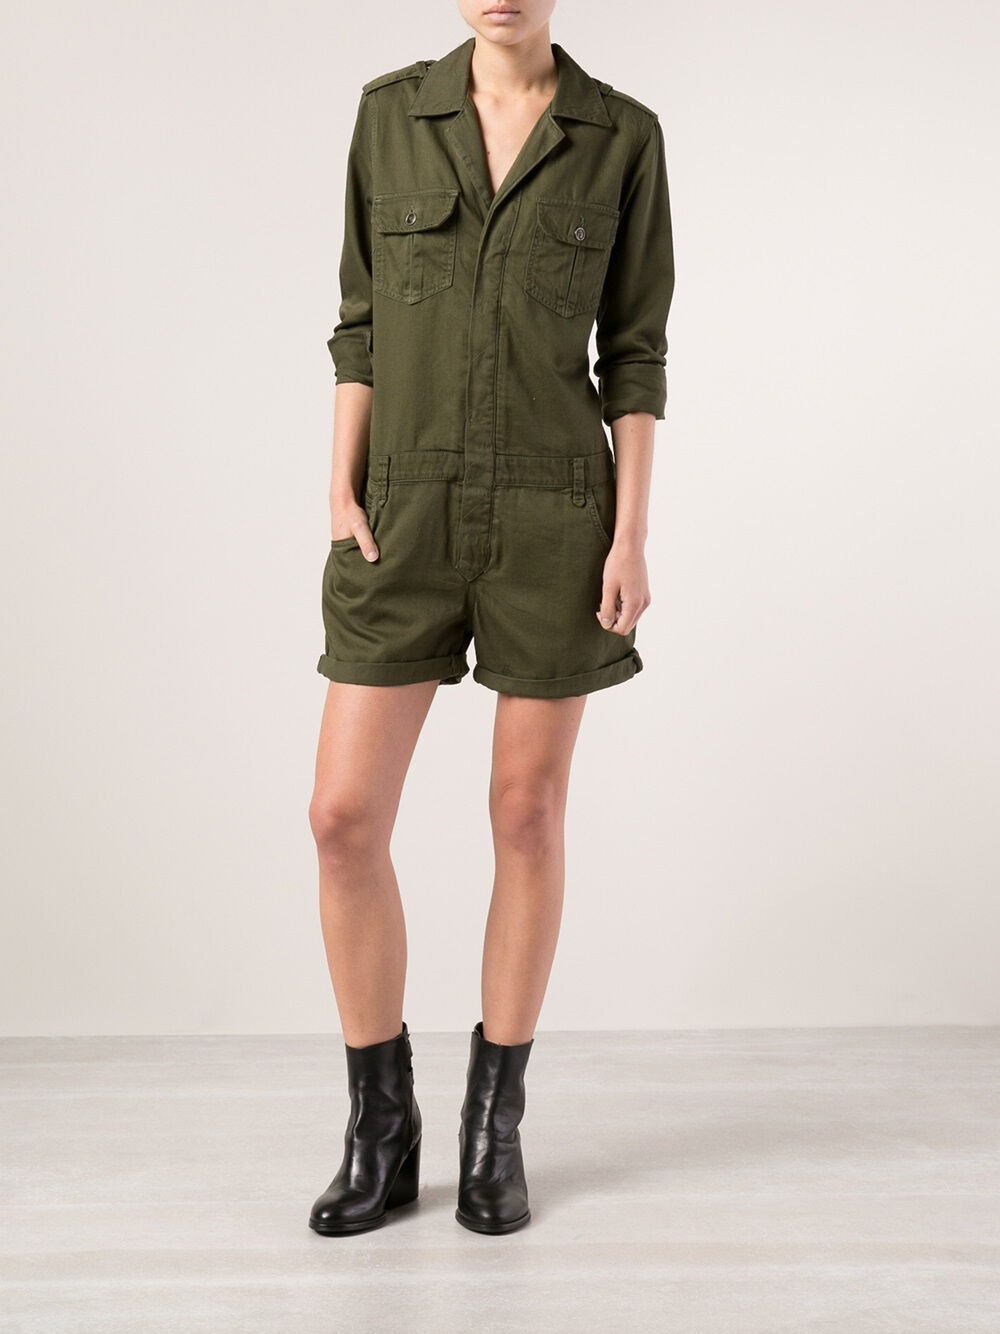 JOE'S JEANS Olive Green Military Shirtall Romper Celebrity Size S NWT  198